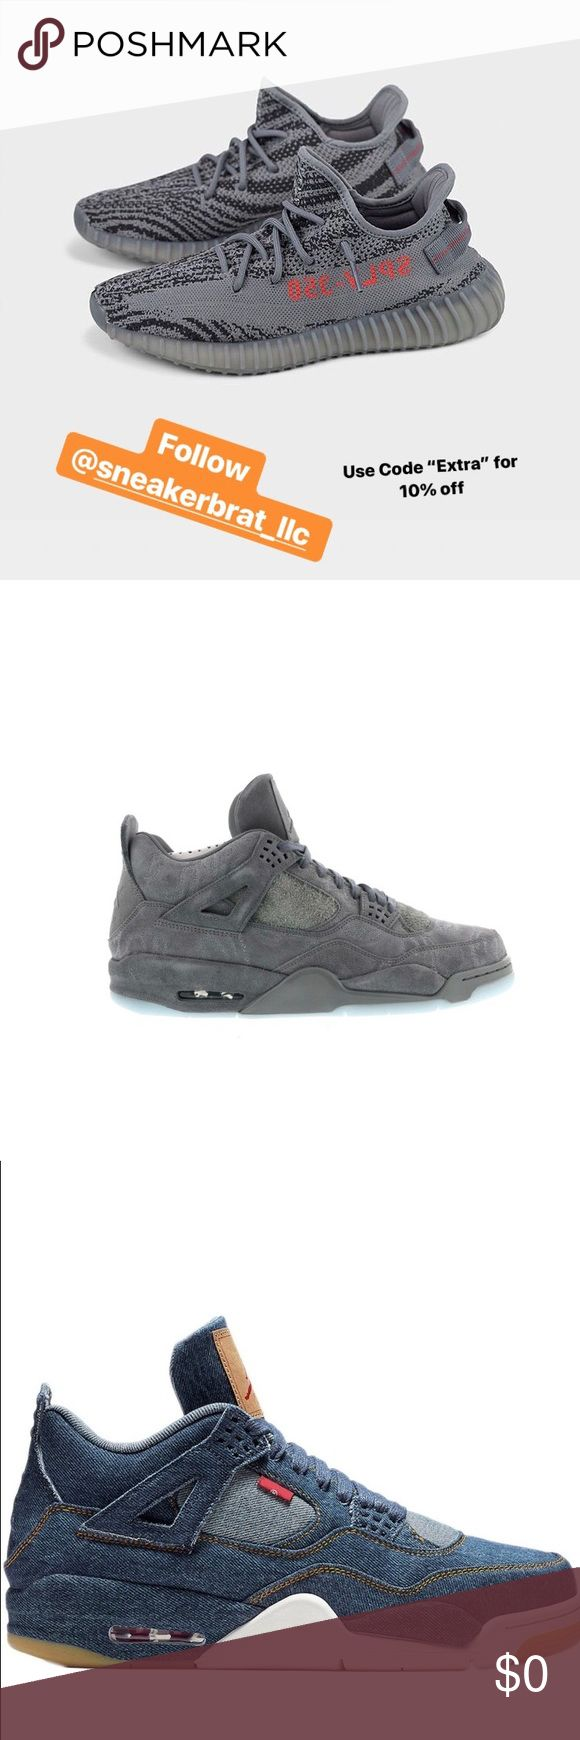 all styles nike shoes listsource promo code 930967